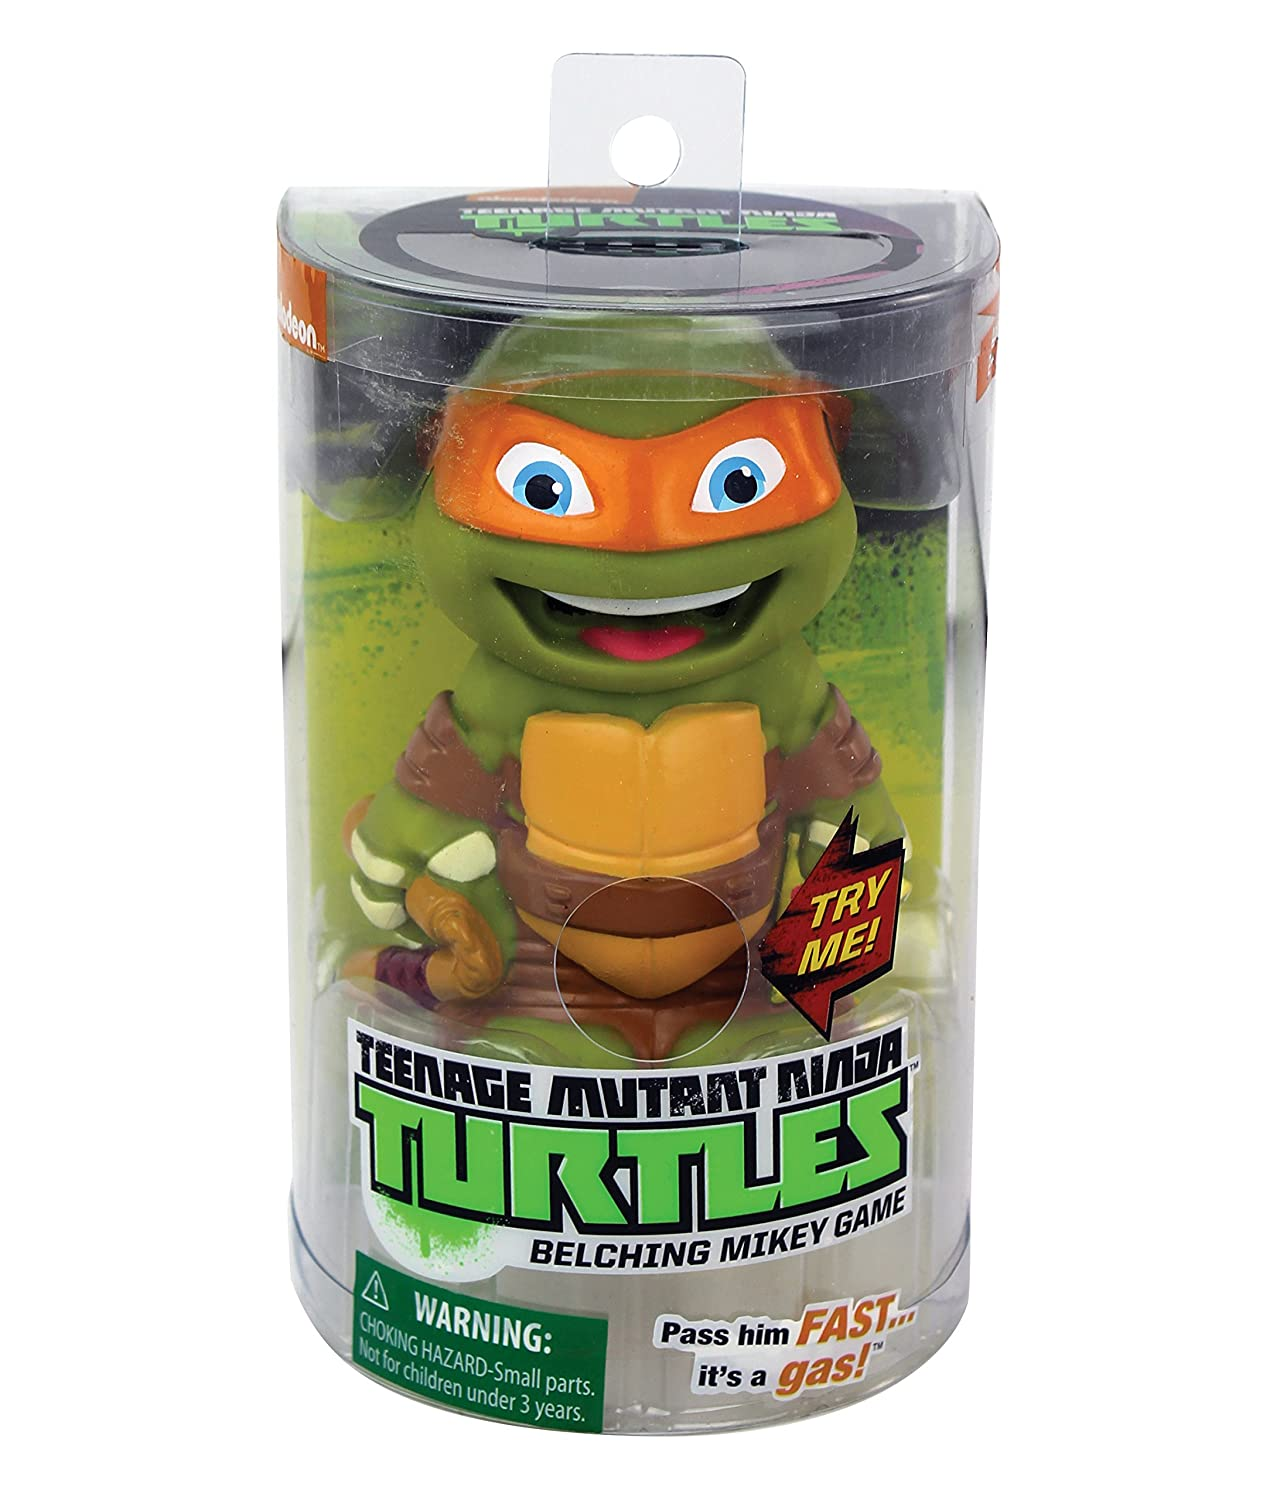 Teenage Mutant Ninja Turtles - Belching Mikey Patch Products 7387